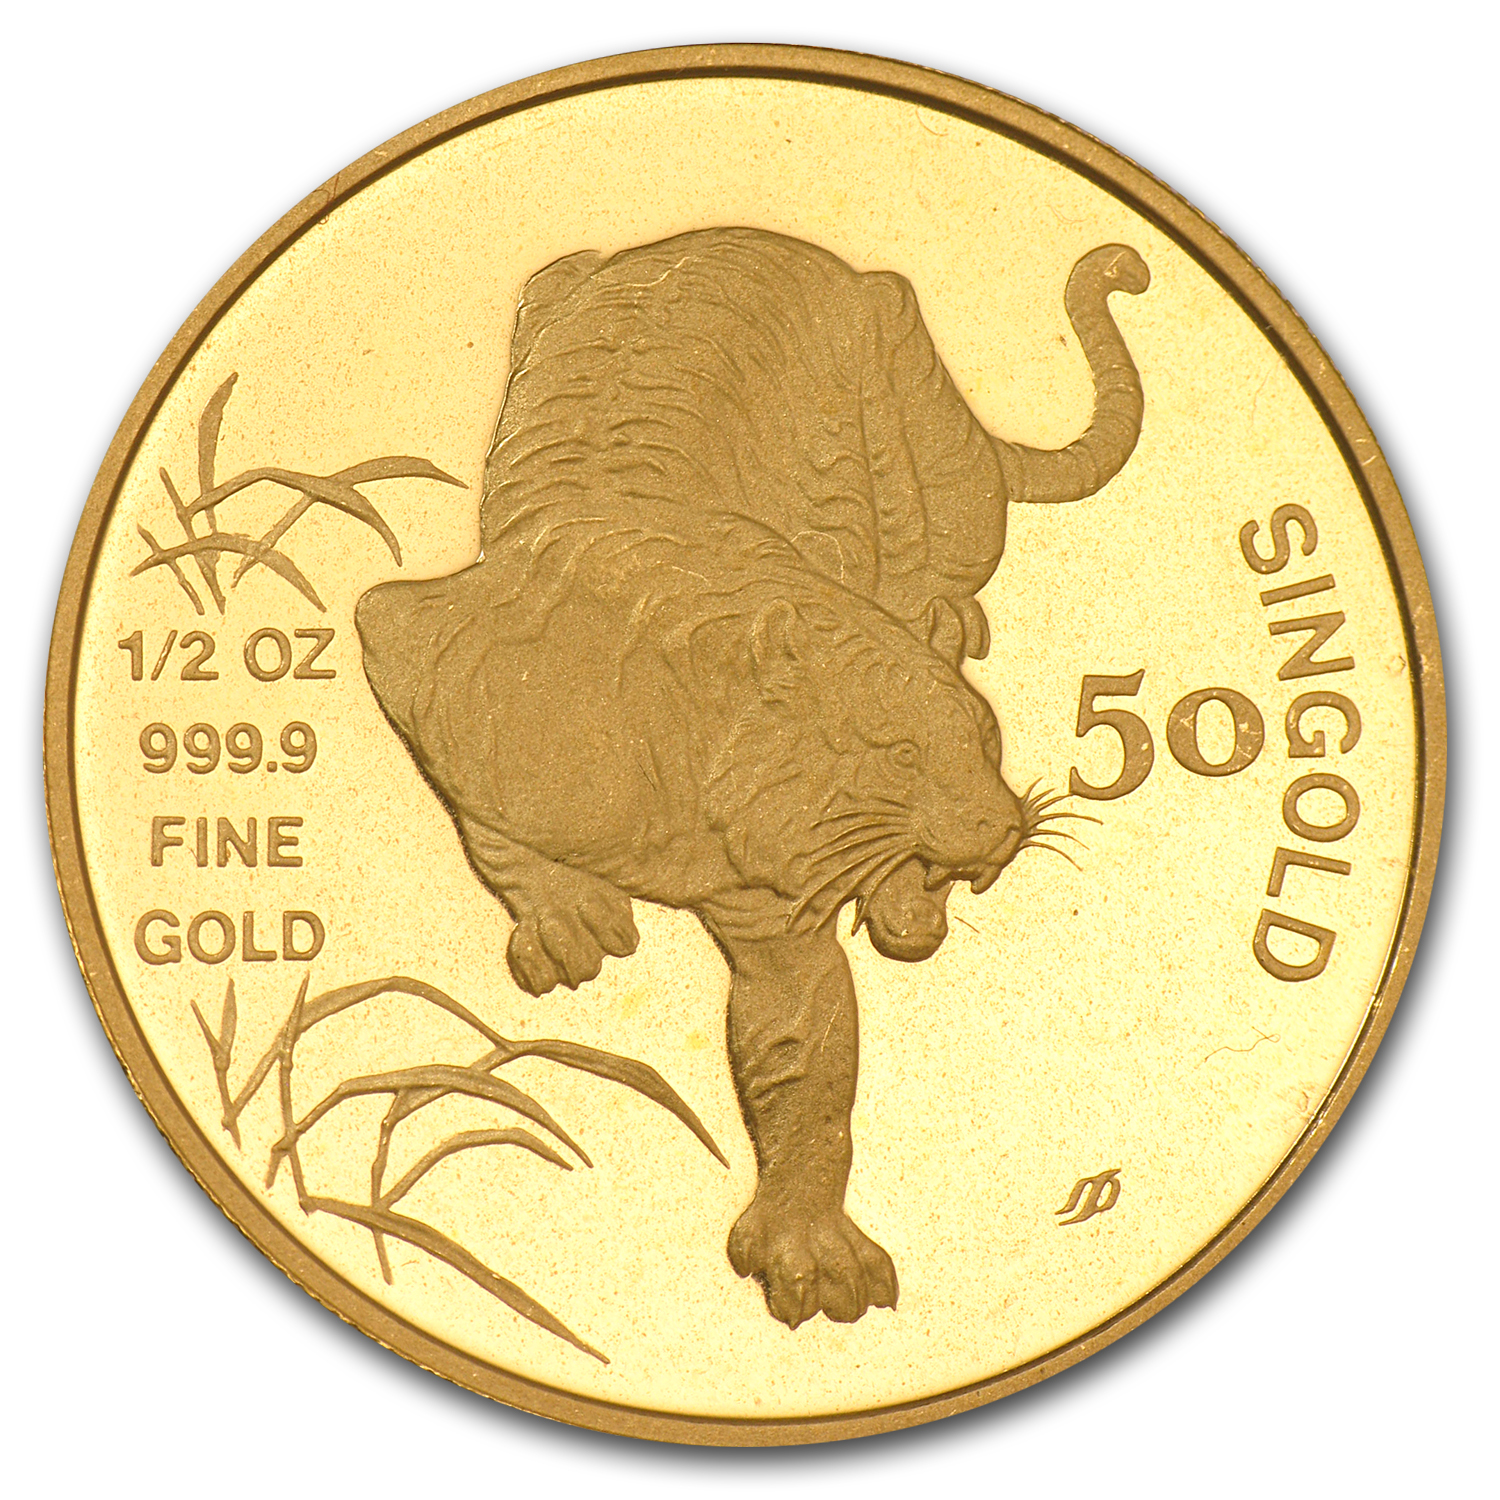 Singapore 1986 - Tiger 50 Singold (1/2 Oz) Gold Coin (Proof)